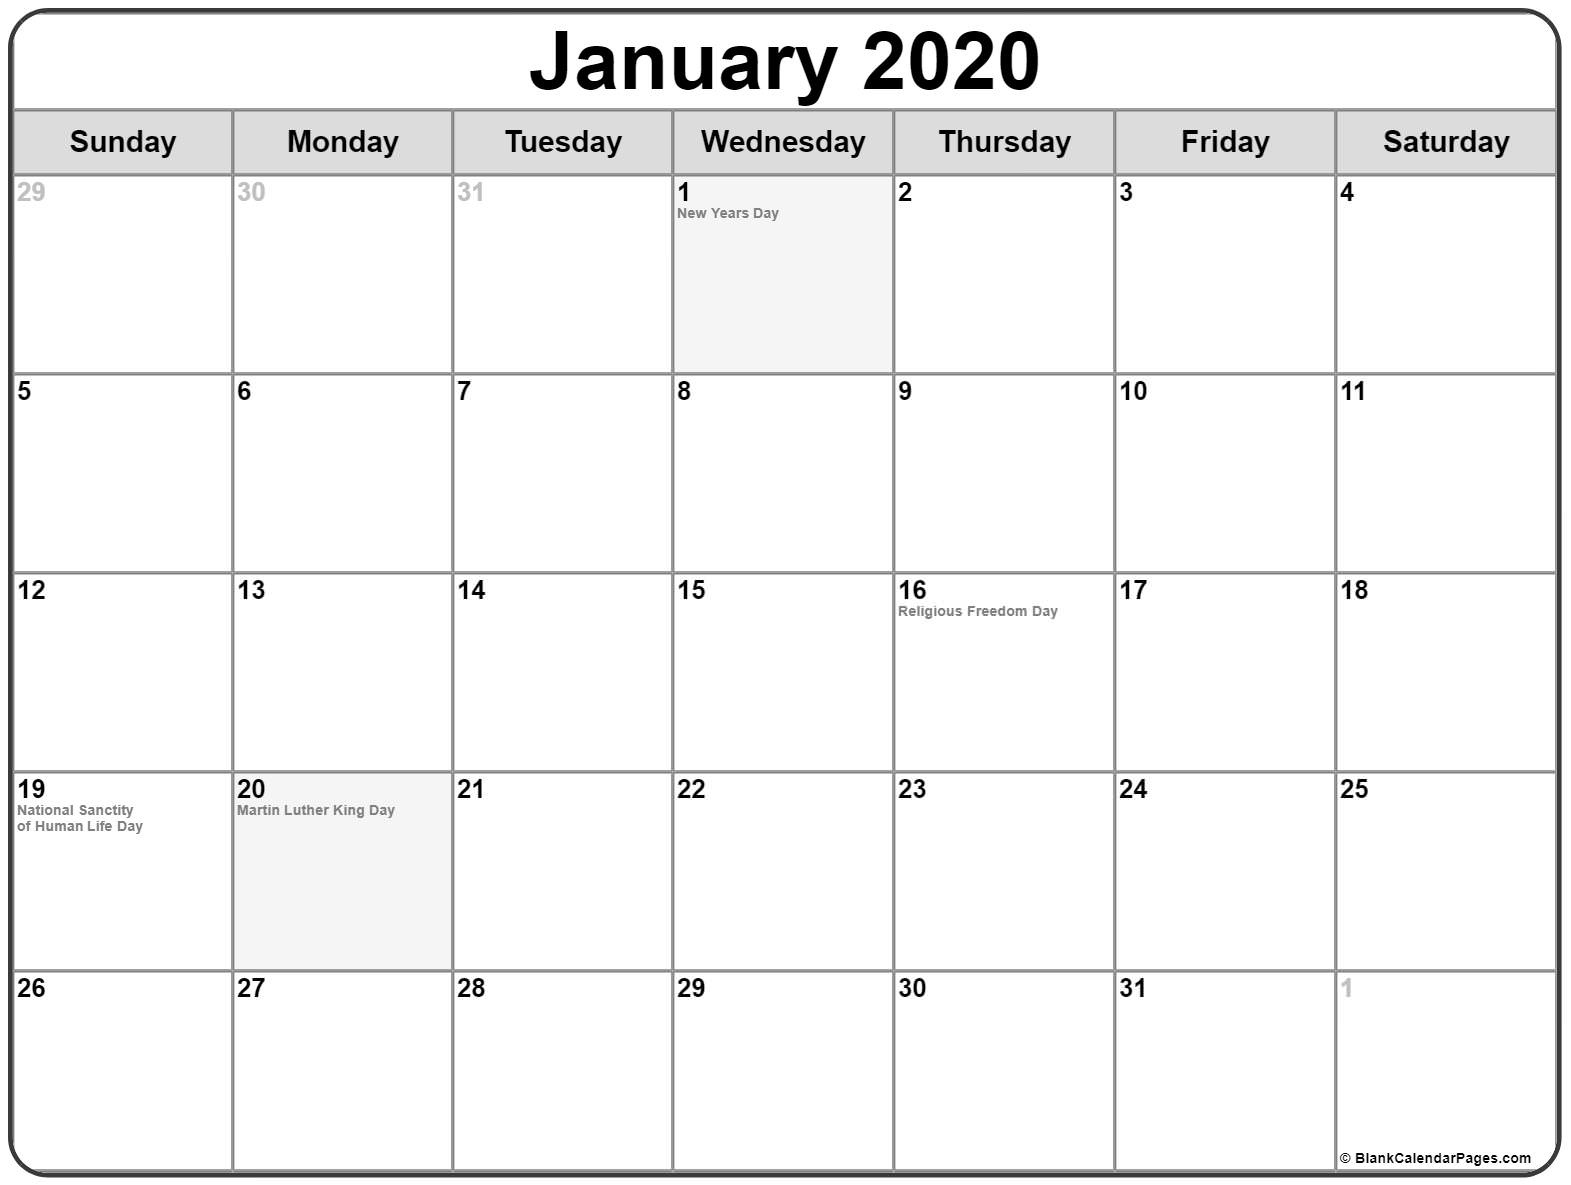 Events Usa January 2020.January Holidays 2020 January 2020 Calendar With Festival